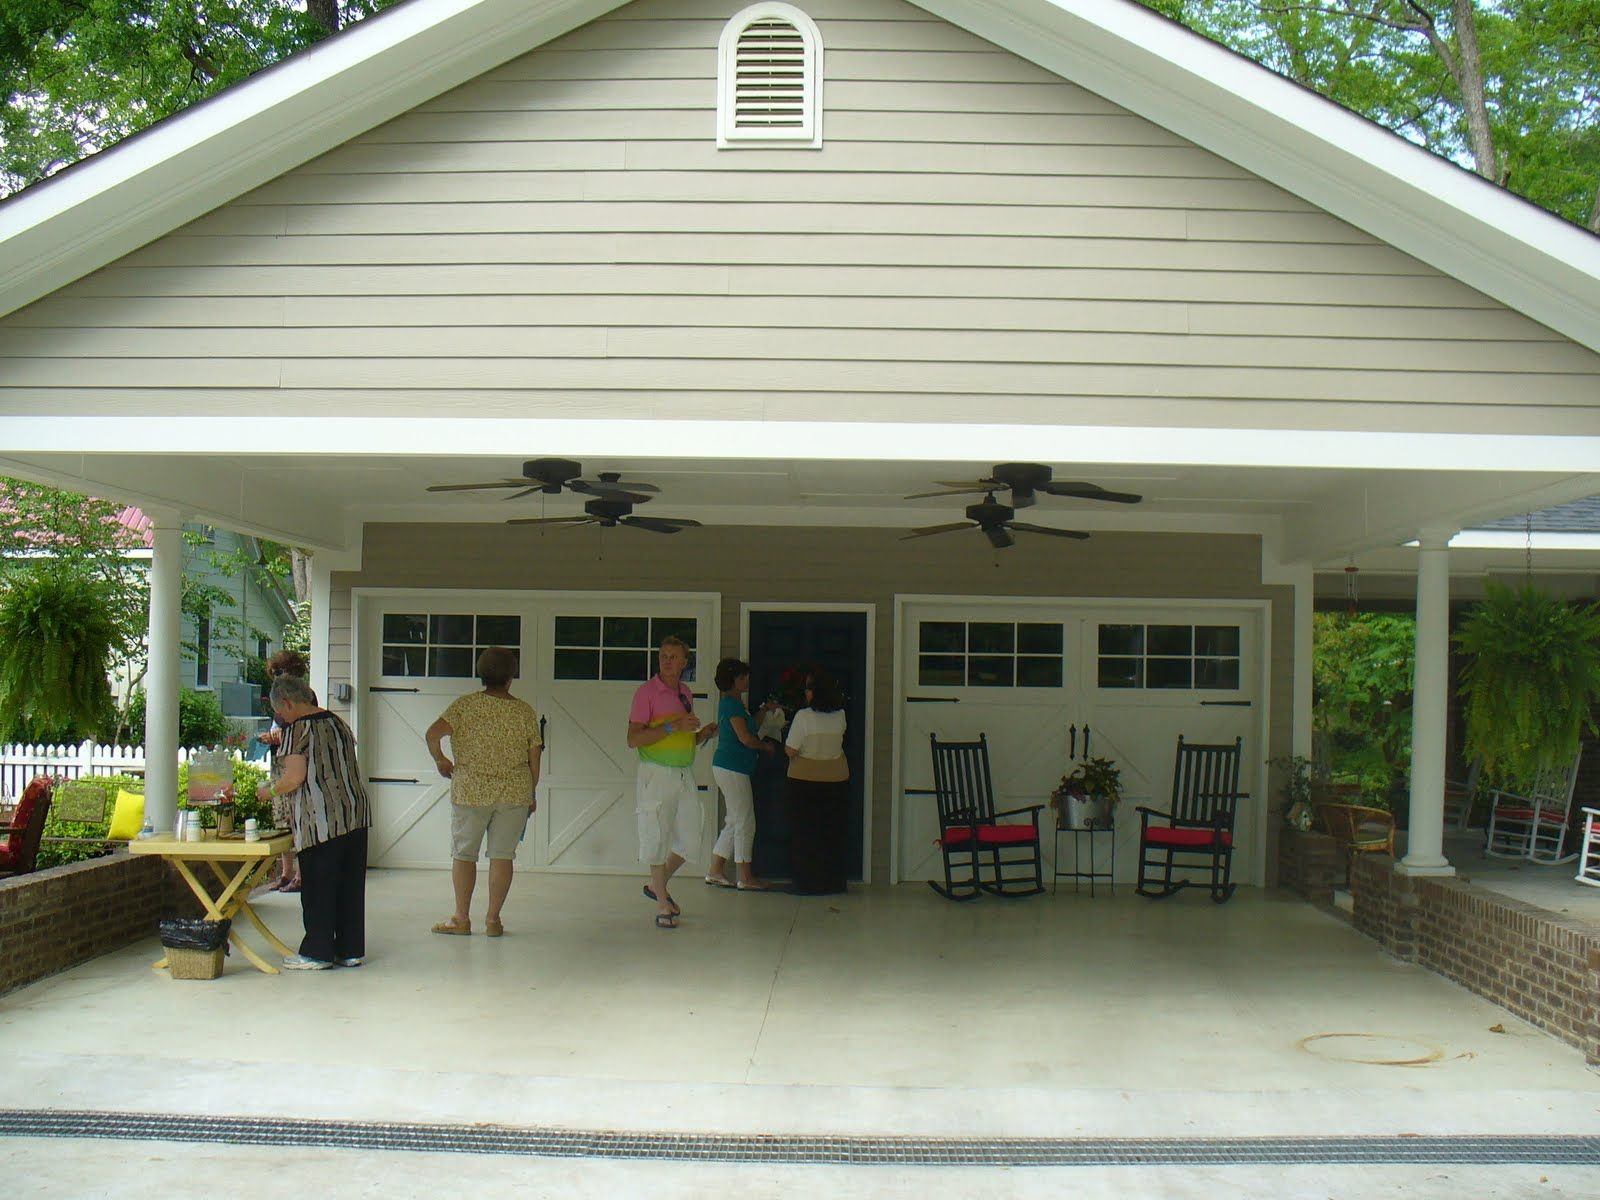 Carport patio on pinterest carport designs carport for Garage building ideas